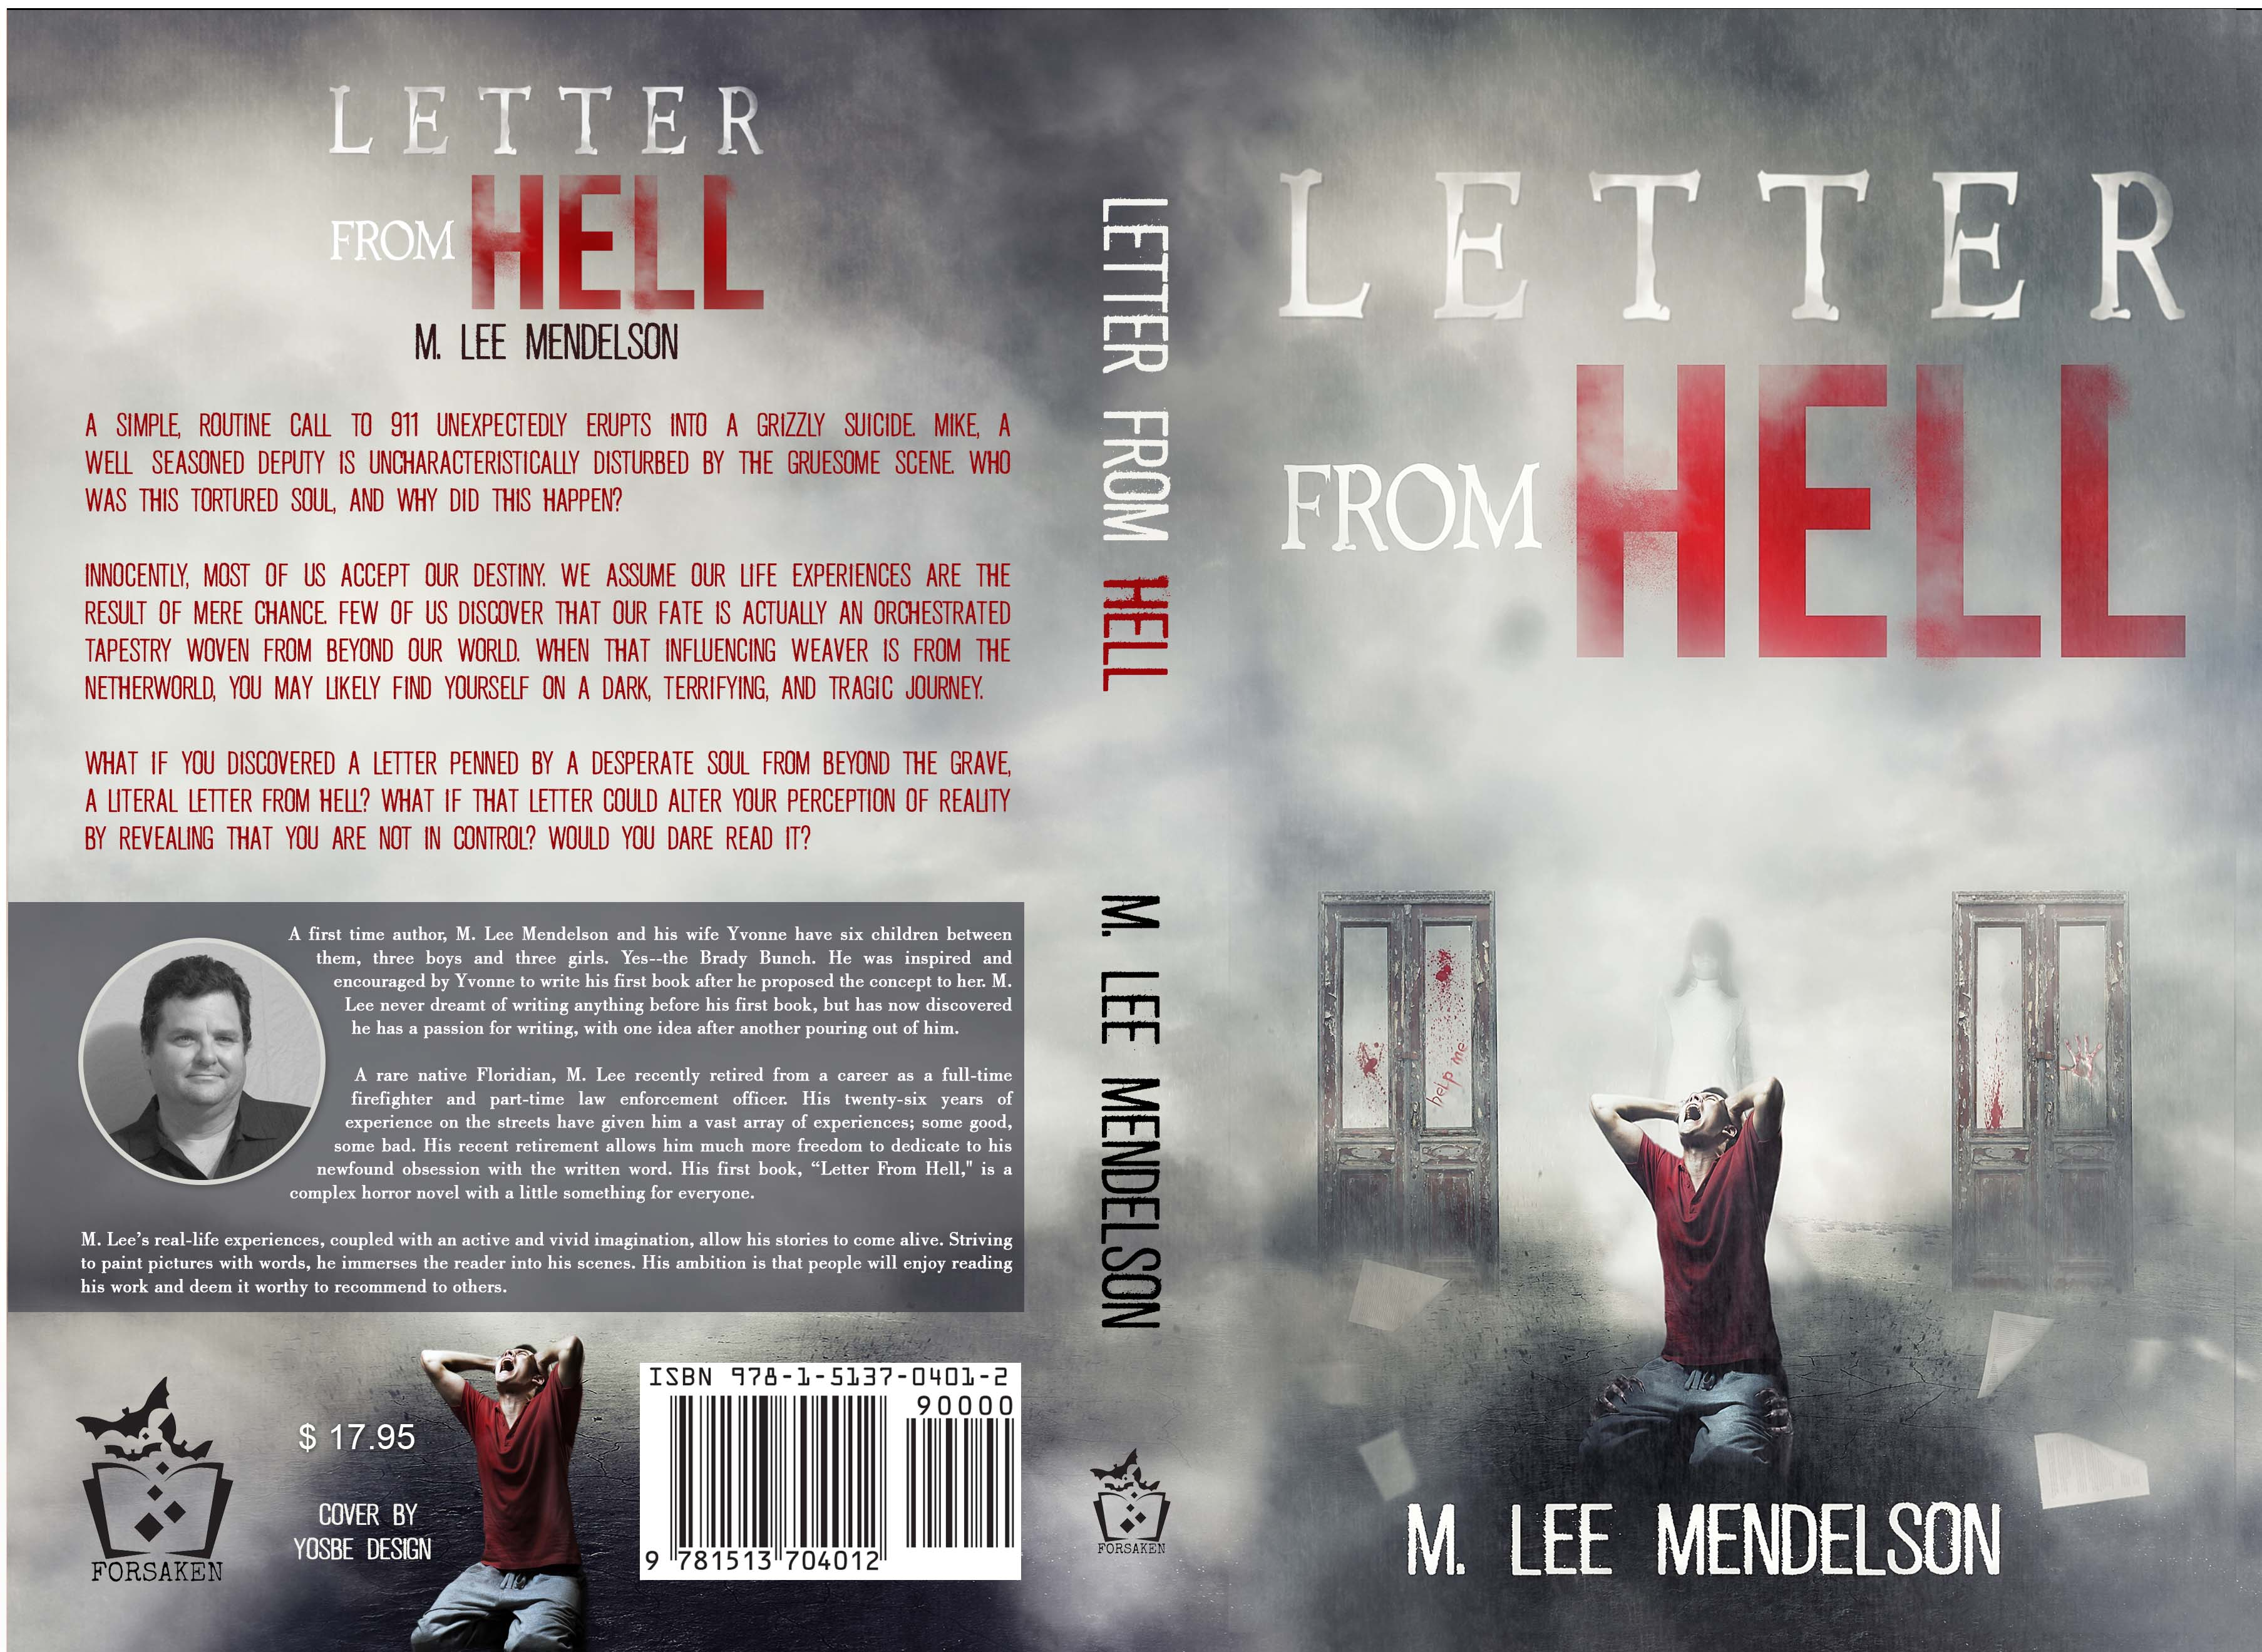 Letter from hell cover, final